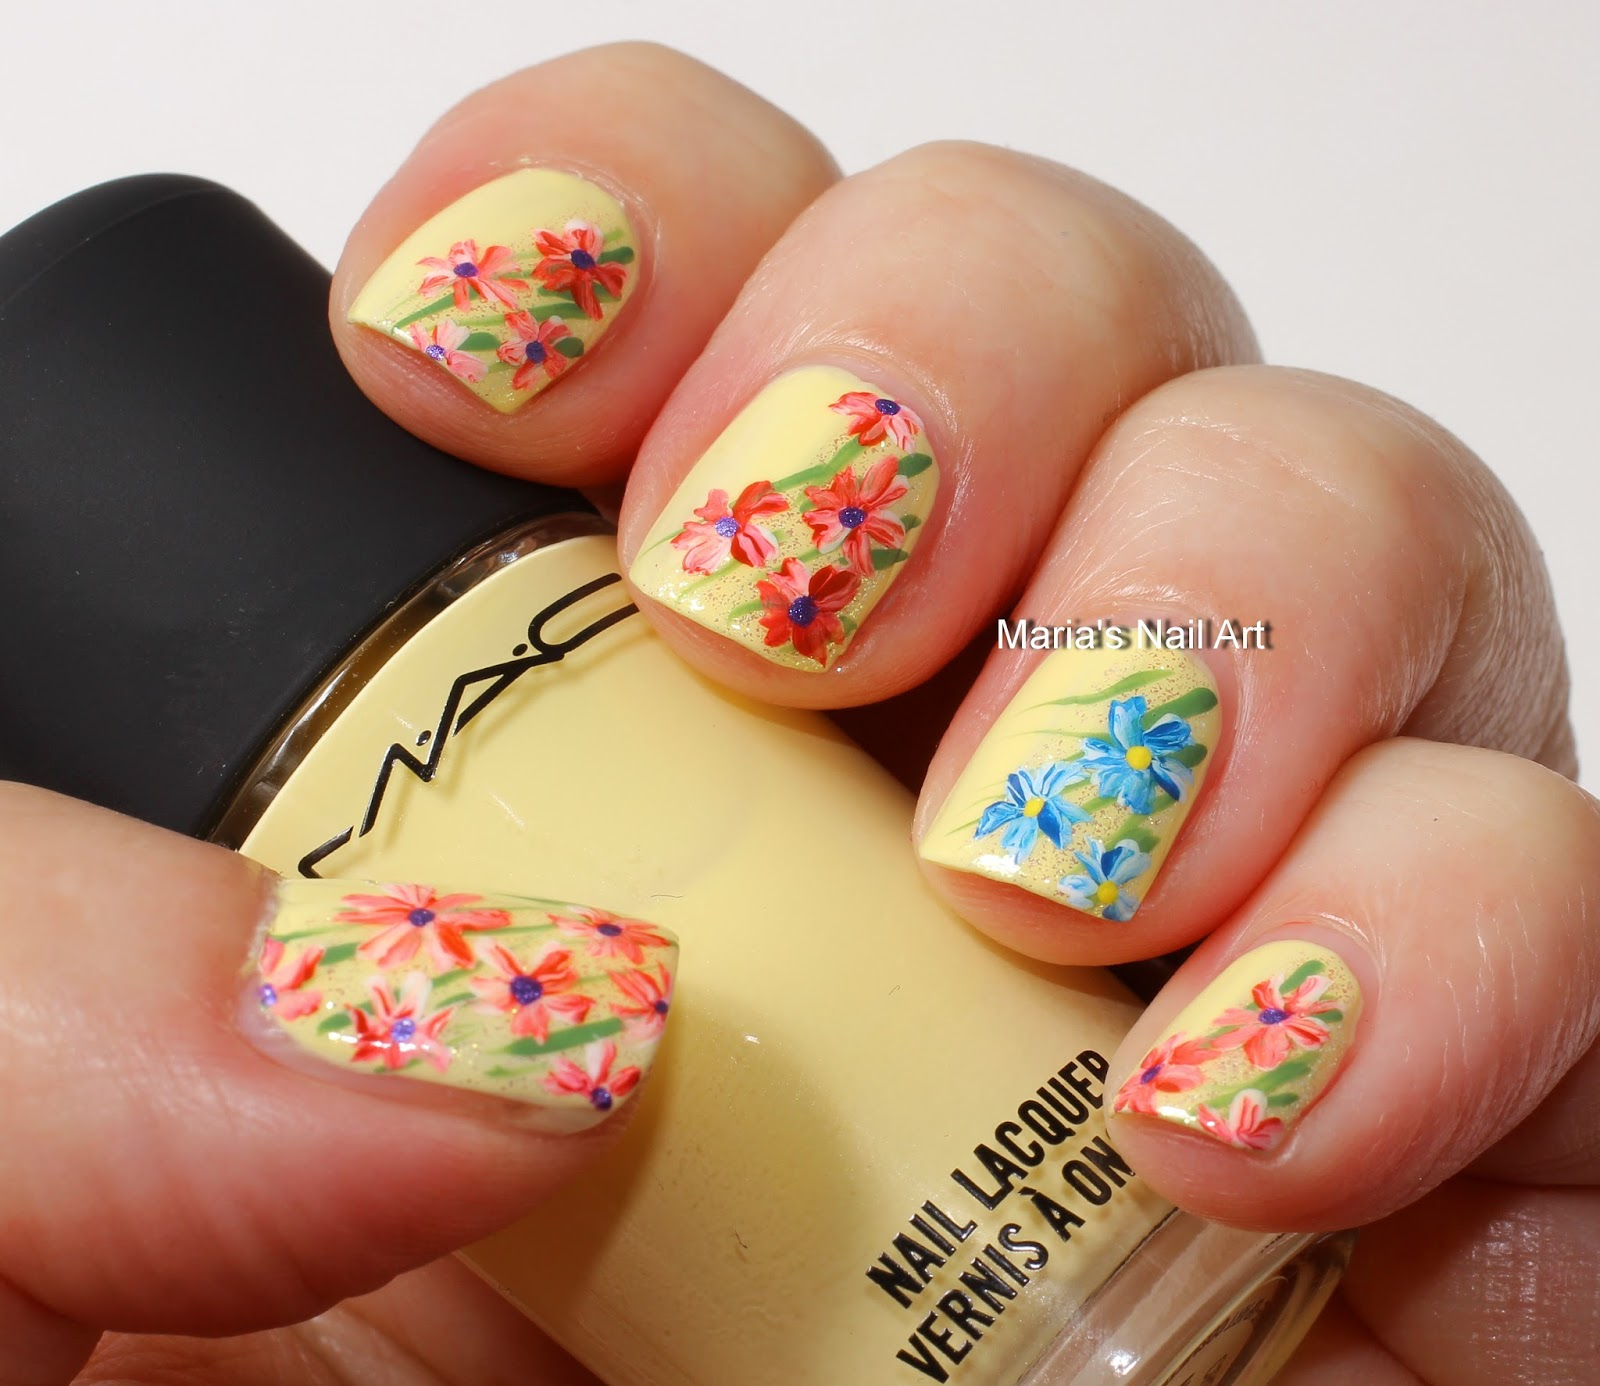 Marias Nail Art And Polish Blog: My Near Beth Flower